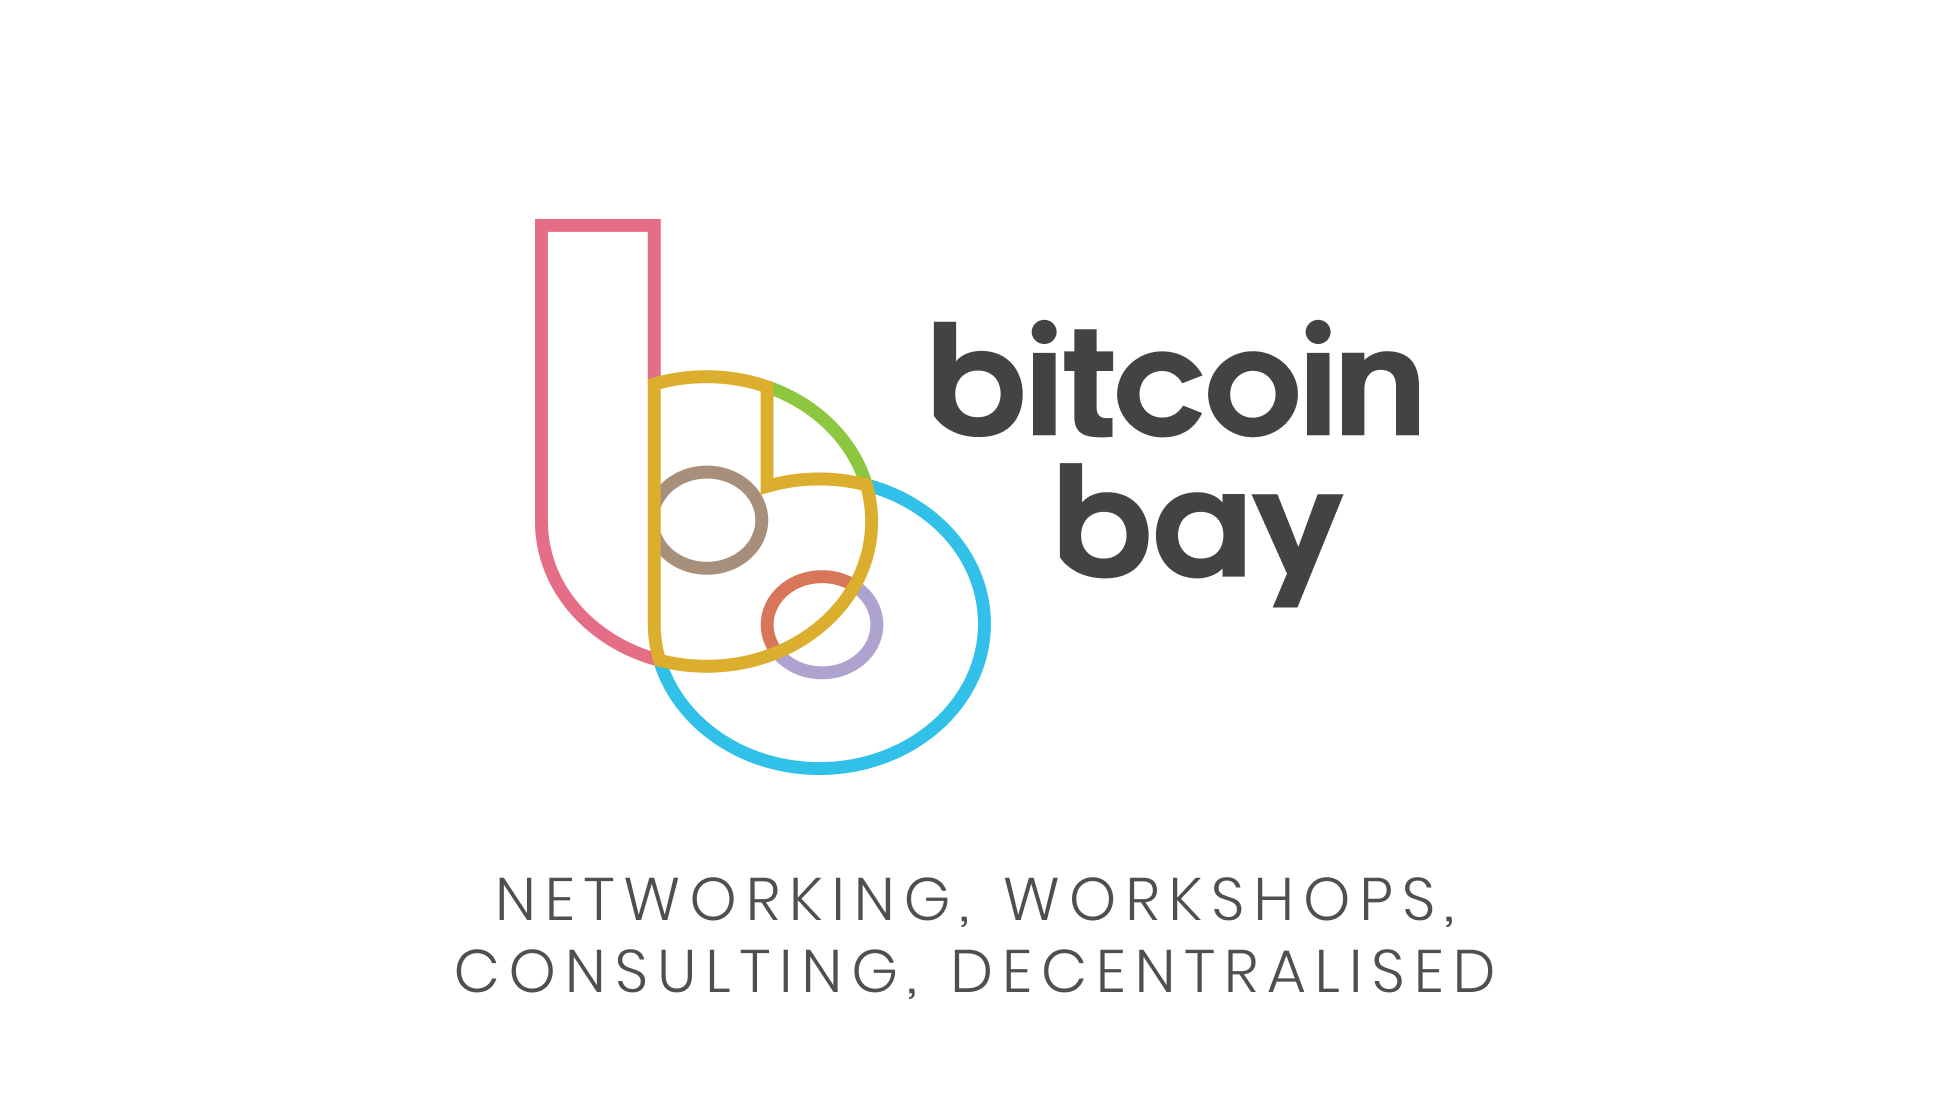 The Bitcoin Bay